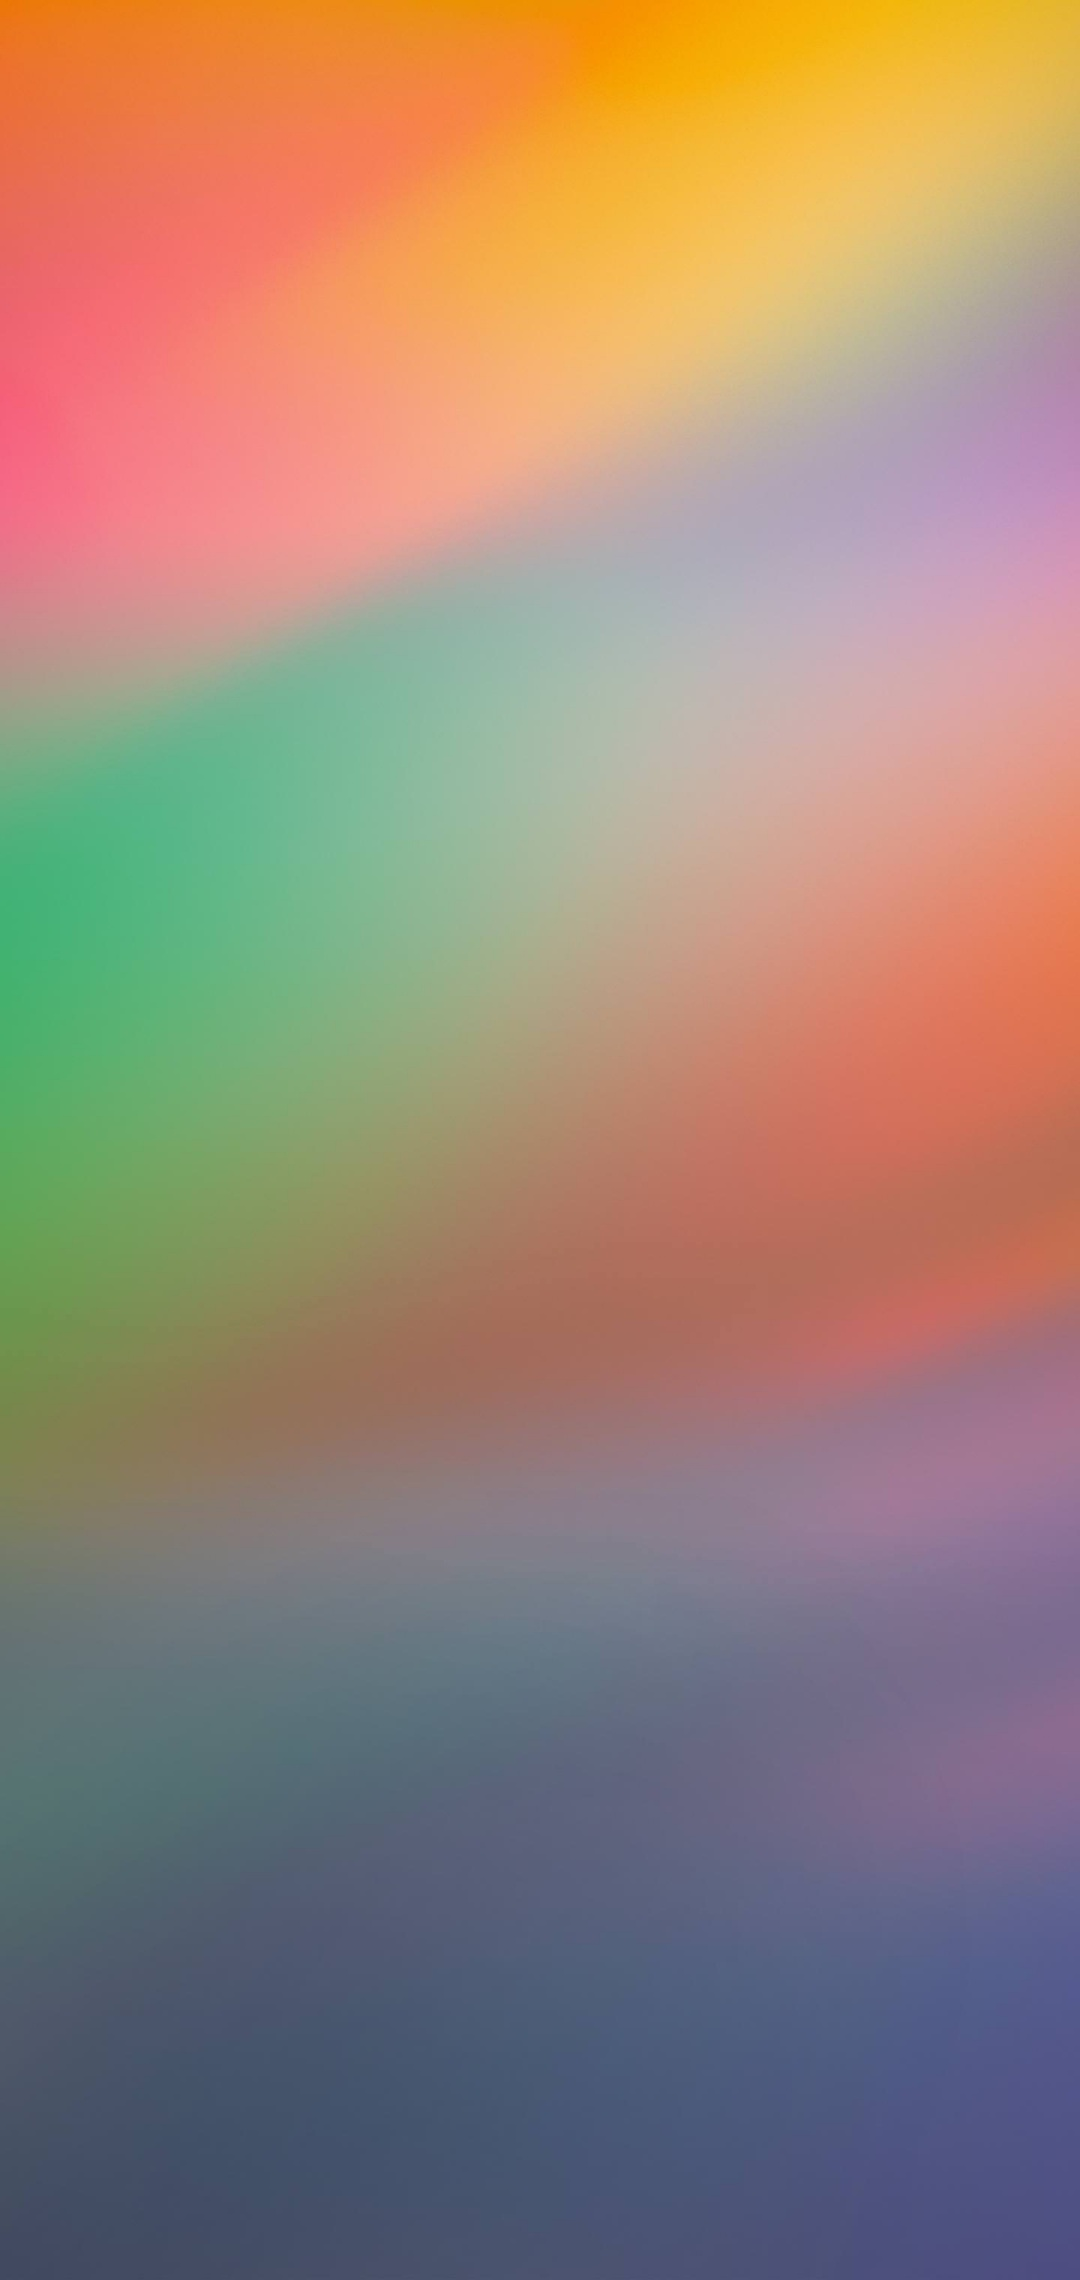 Download Samsung One UI Official Wallpapers [1080 X 2280